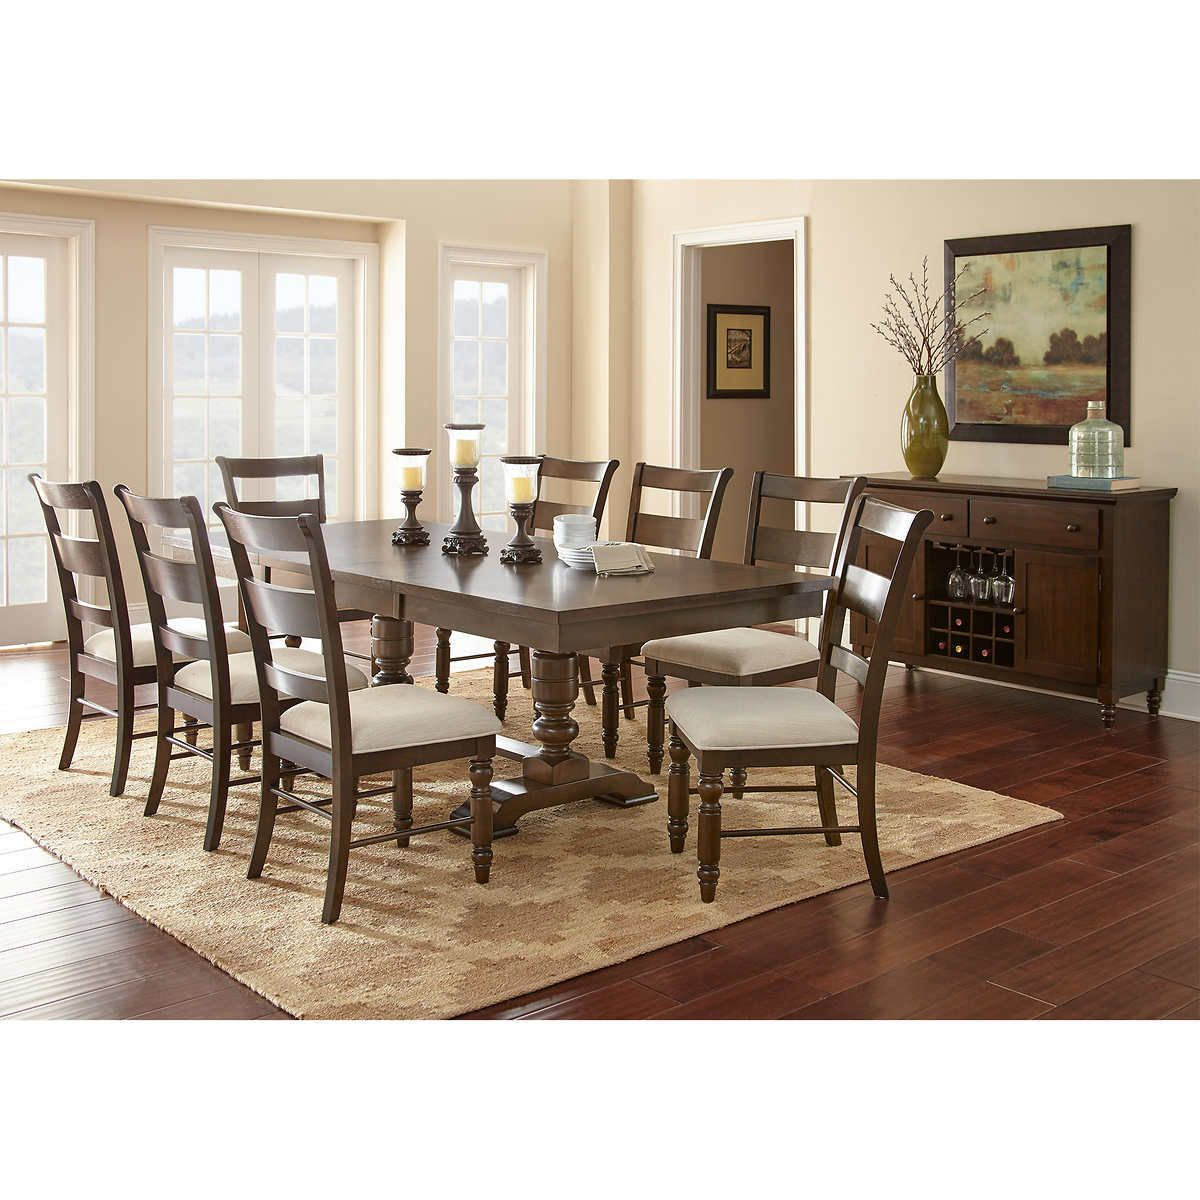 Kaylee 10 Piece Dining Set Dining Room Ambiance Dining Room Furnishings Dining Table Dimensions 10 piece dining room sets